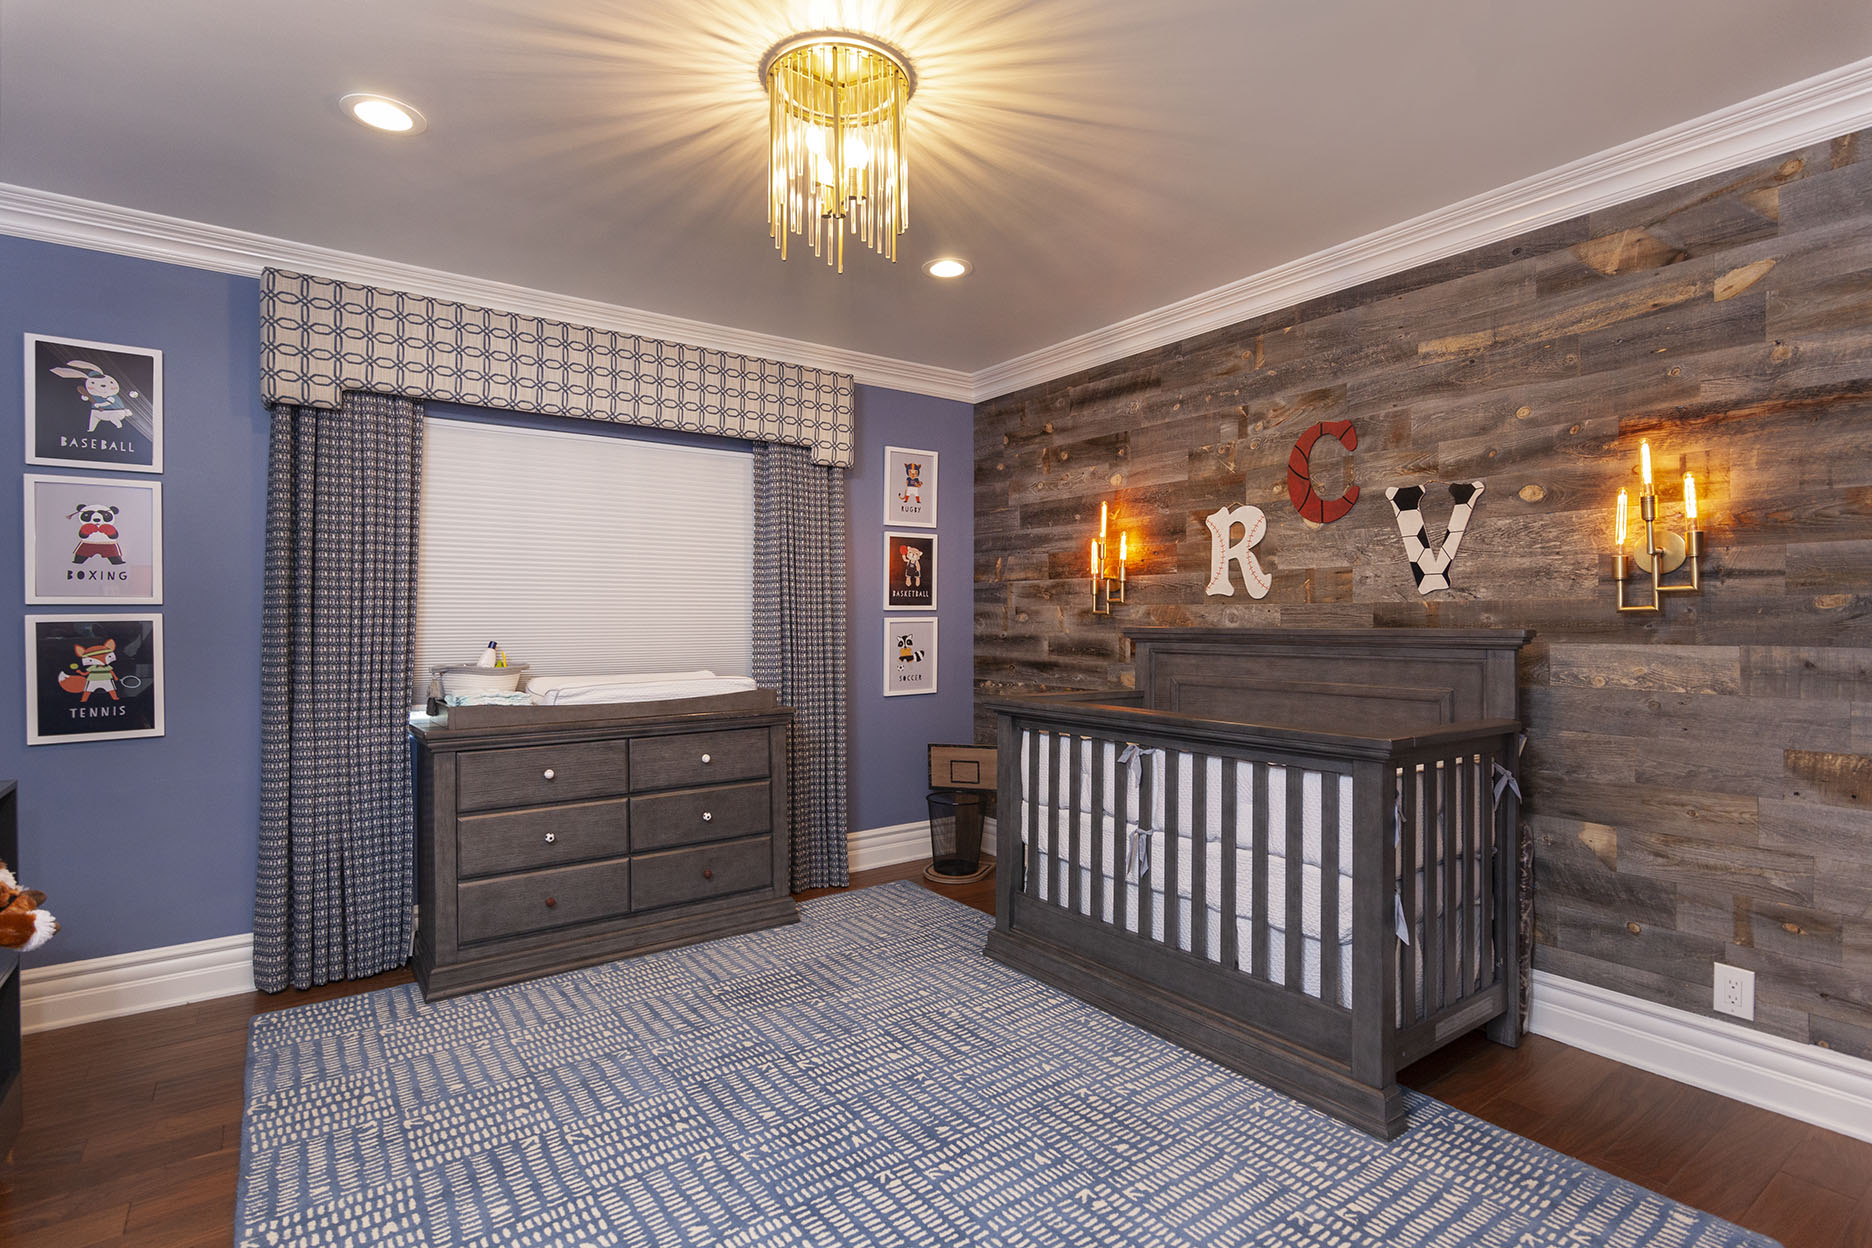 Nursery Interior Design Let The Room Grow With The Baby